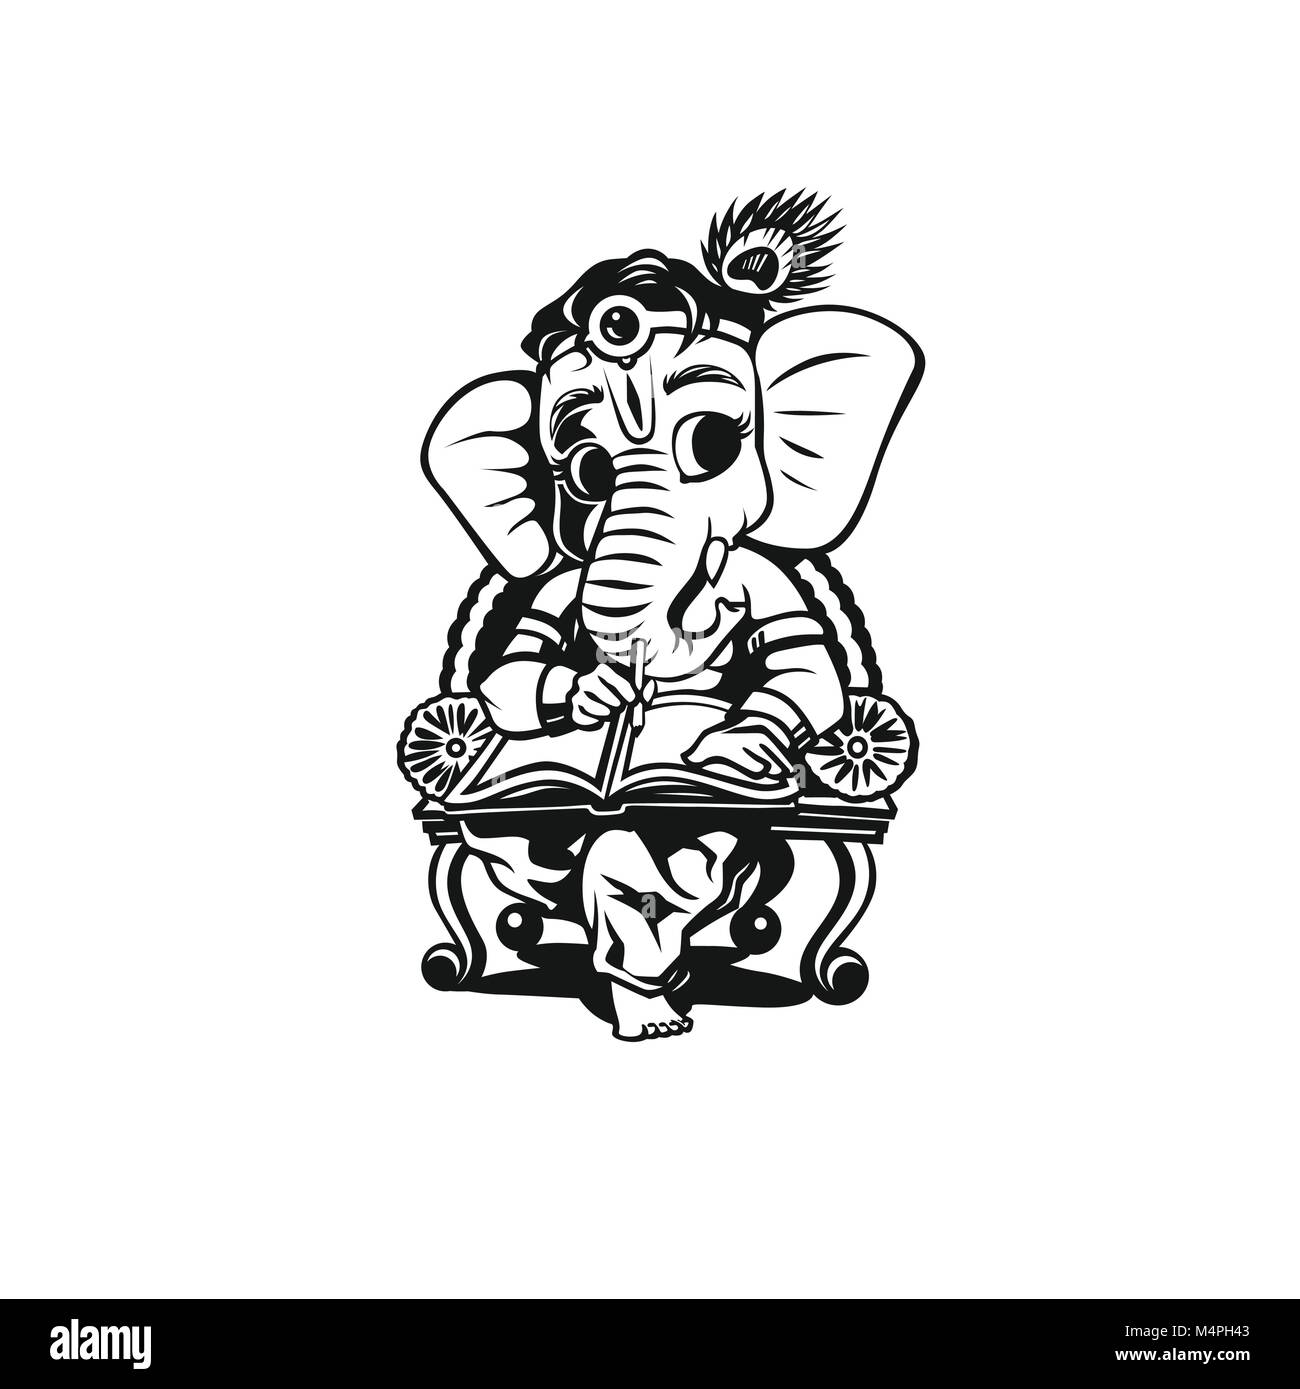 Ganpati Black And White Stock Photos Images Alamy